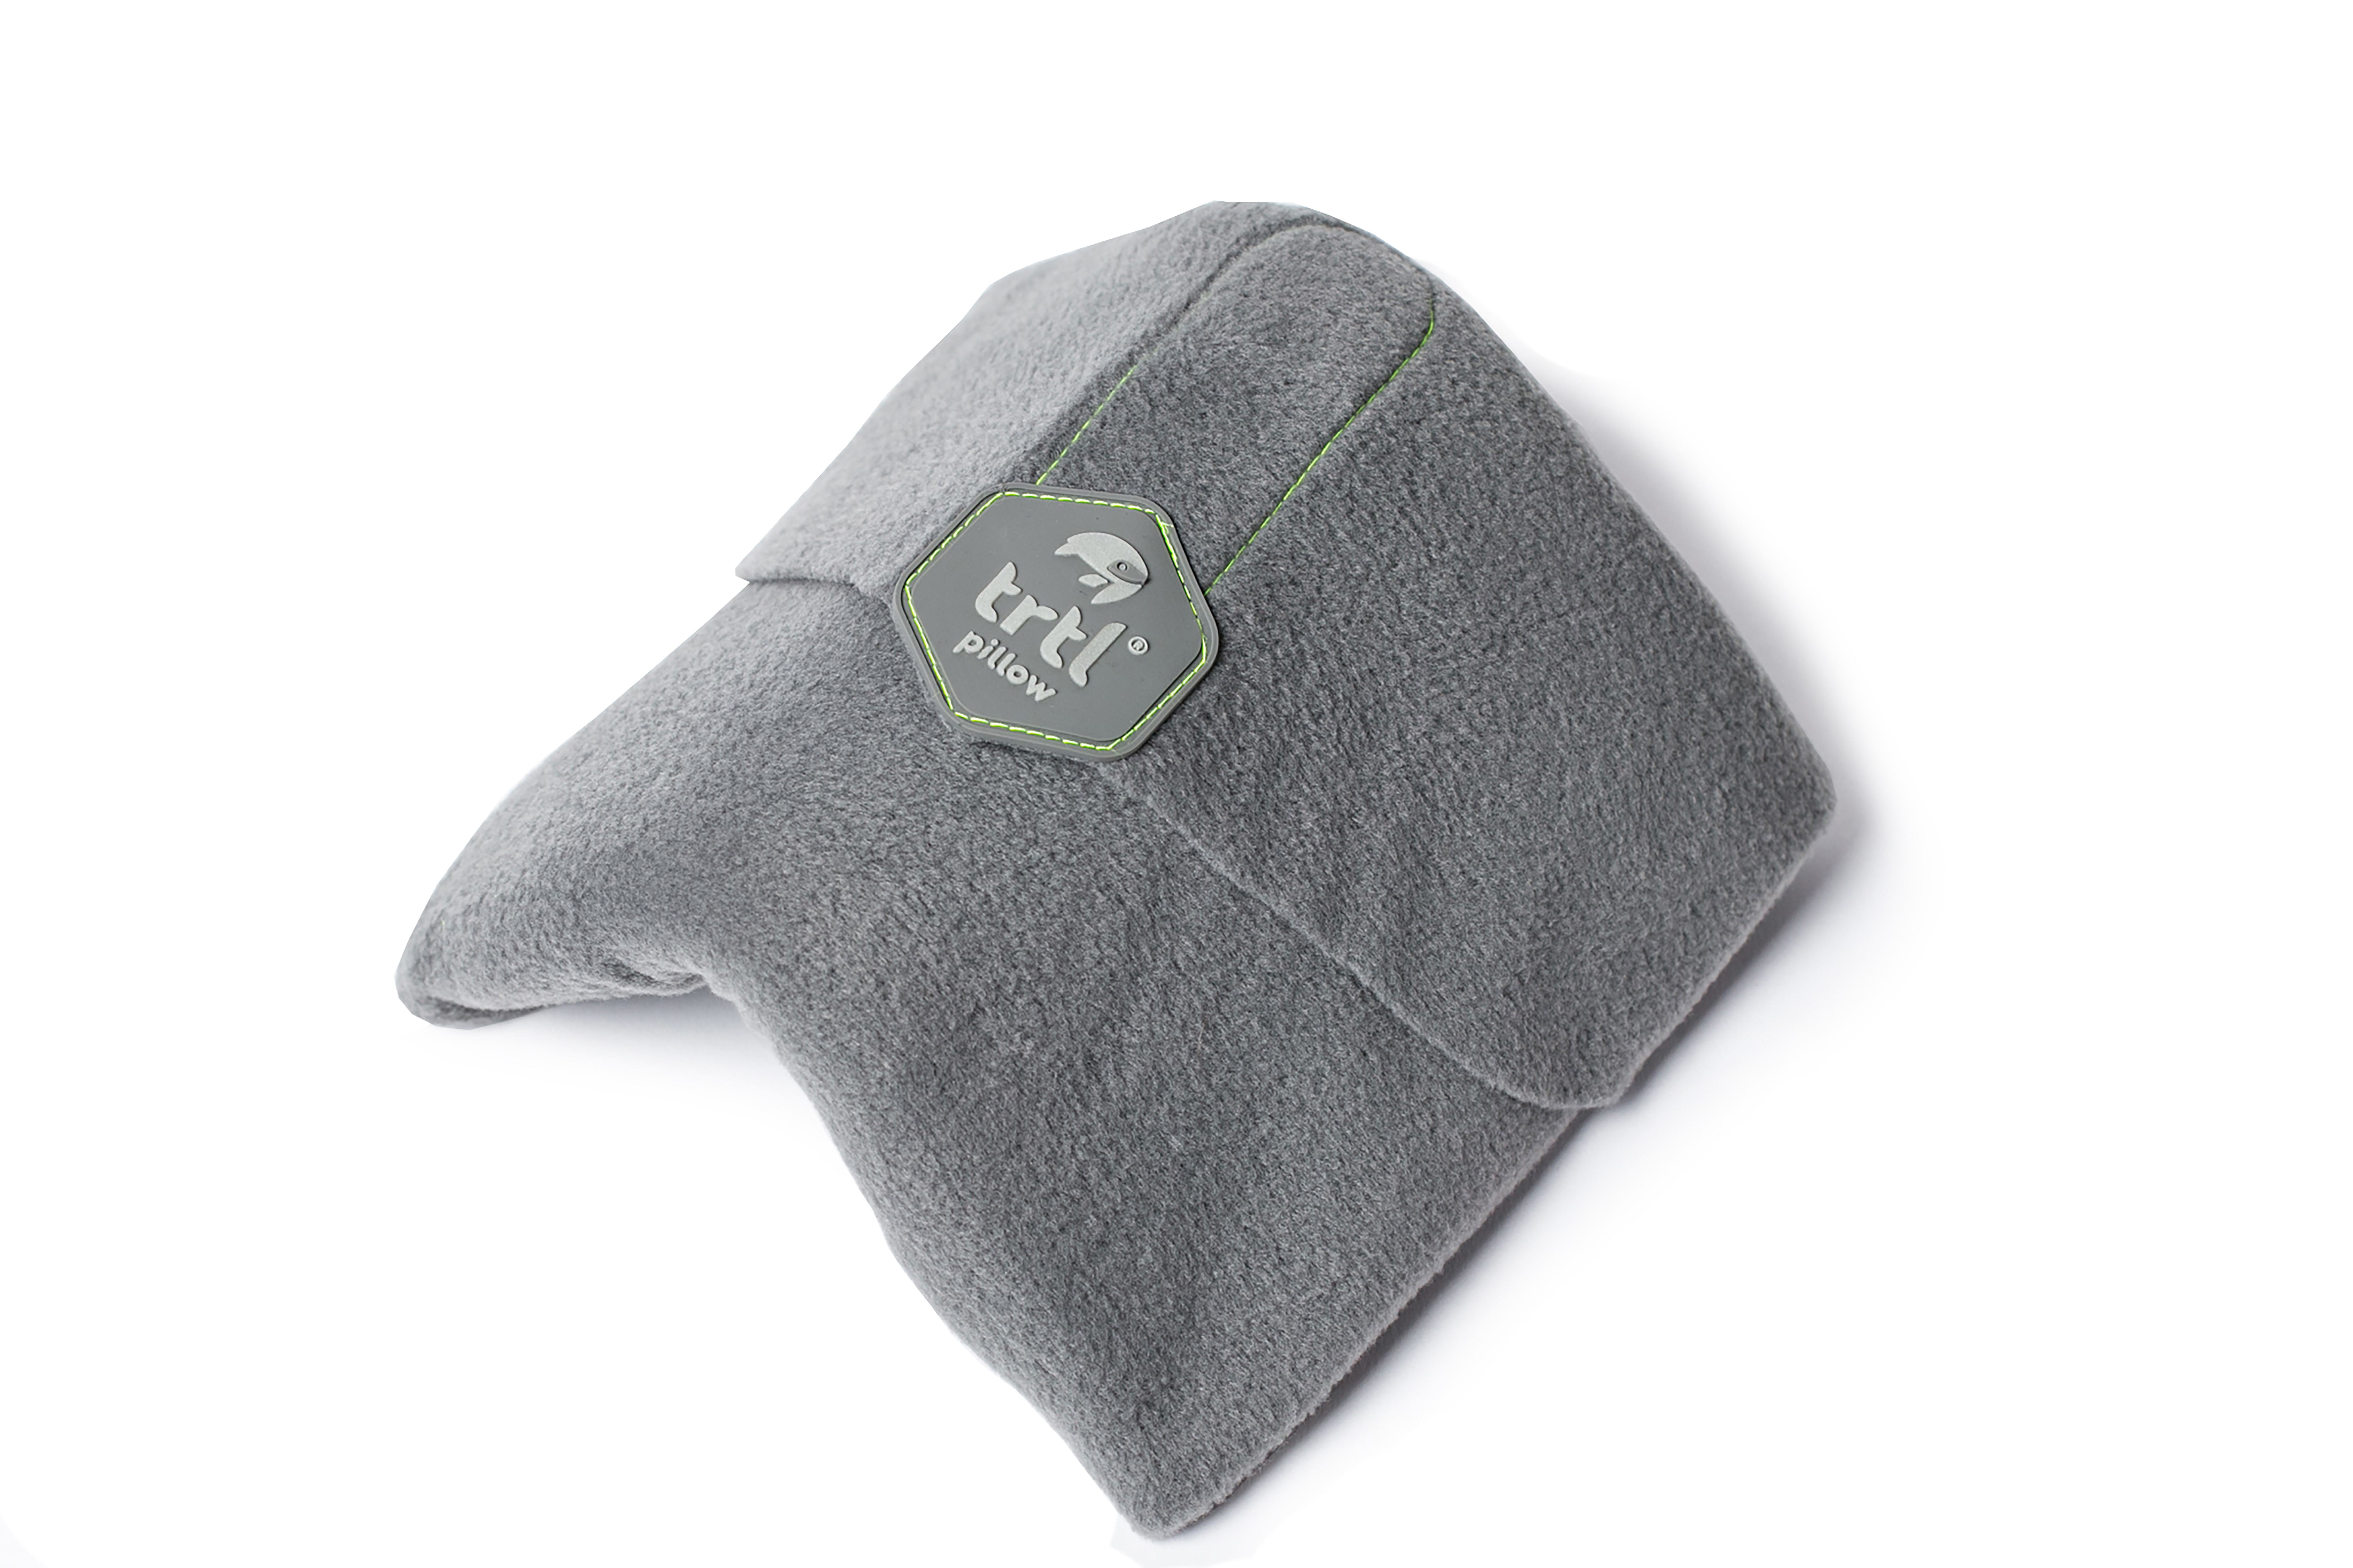 Trtl-pillow-grey.jpg?mtime=20190130120451#asset:104664